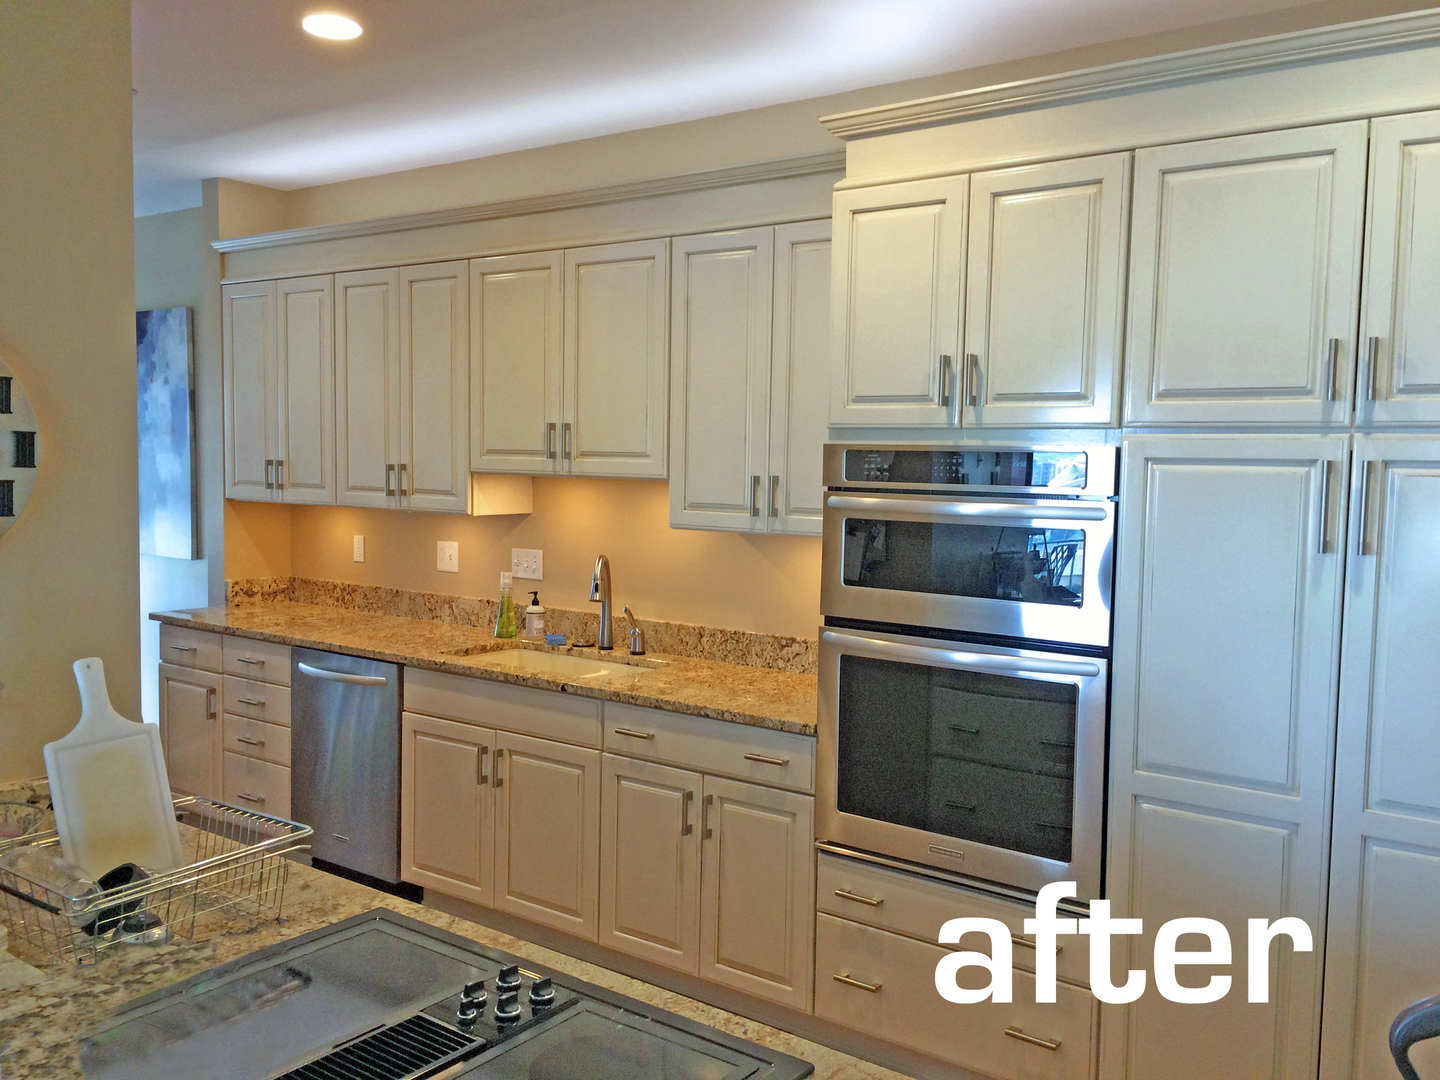 painting kitchen cabinets, remodeling existing kitchens and